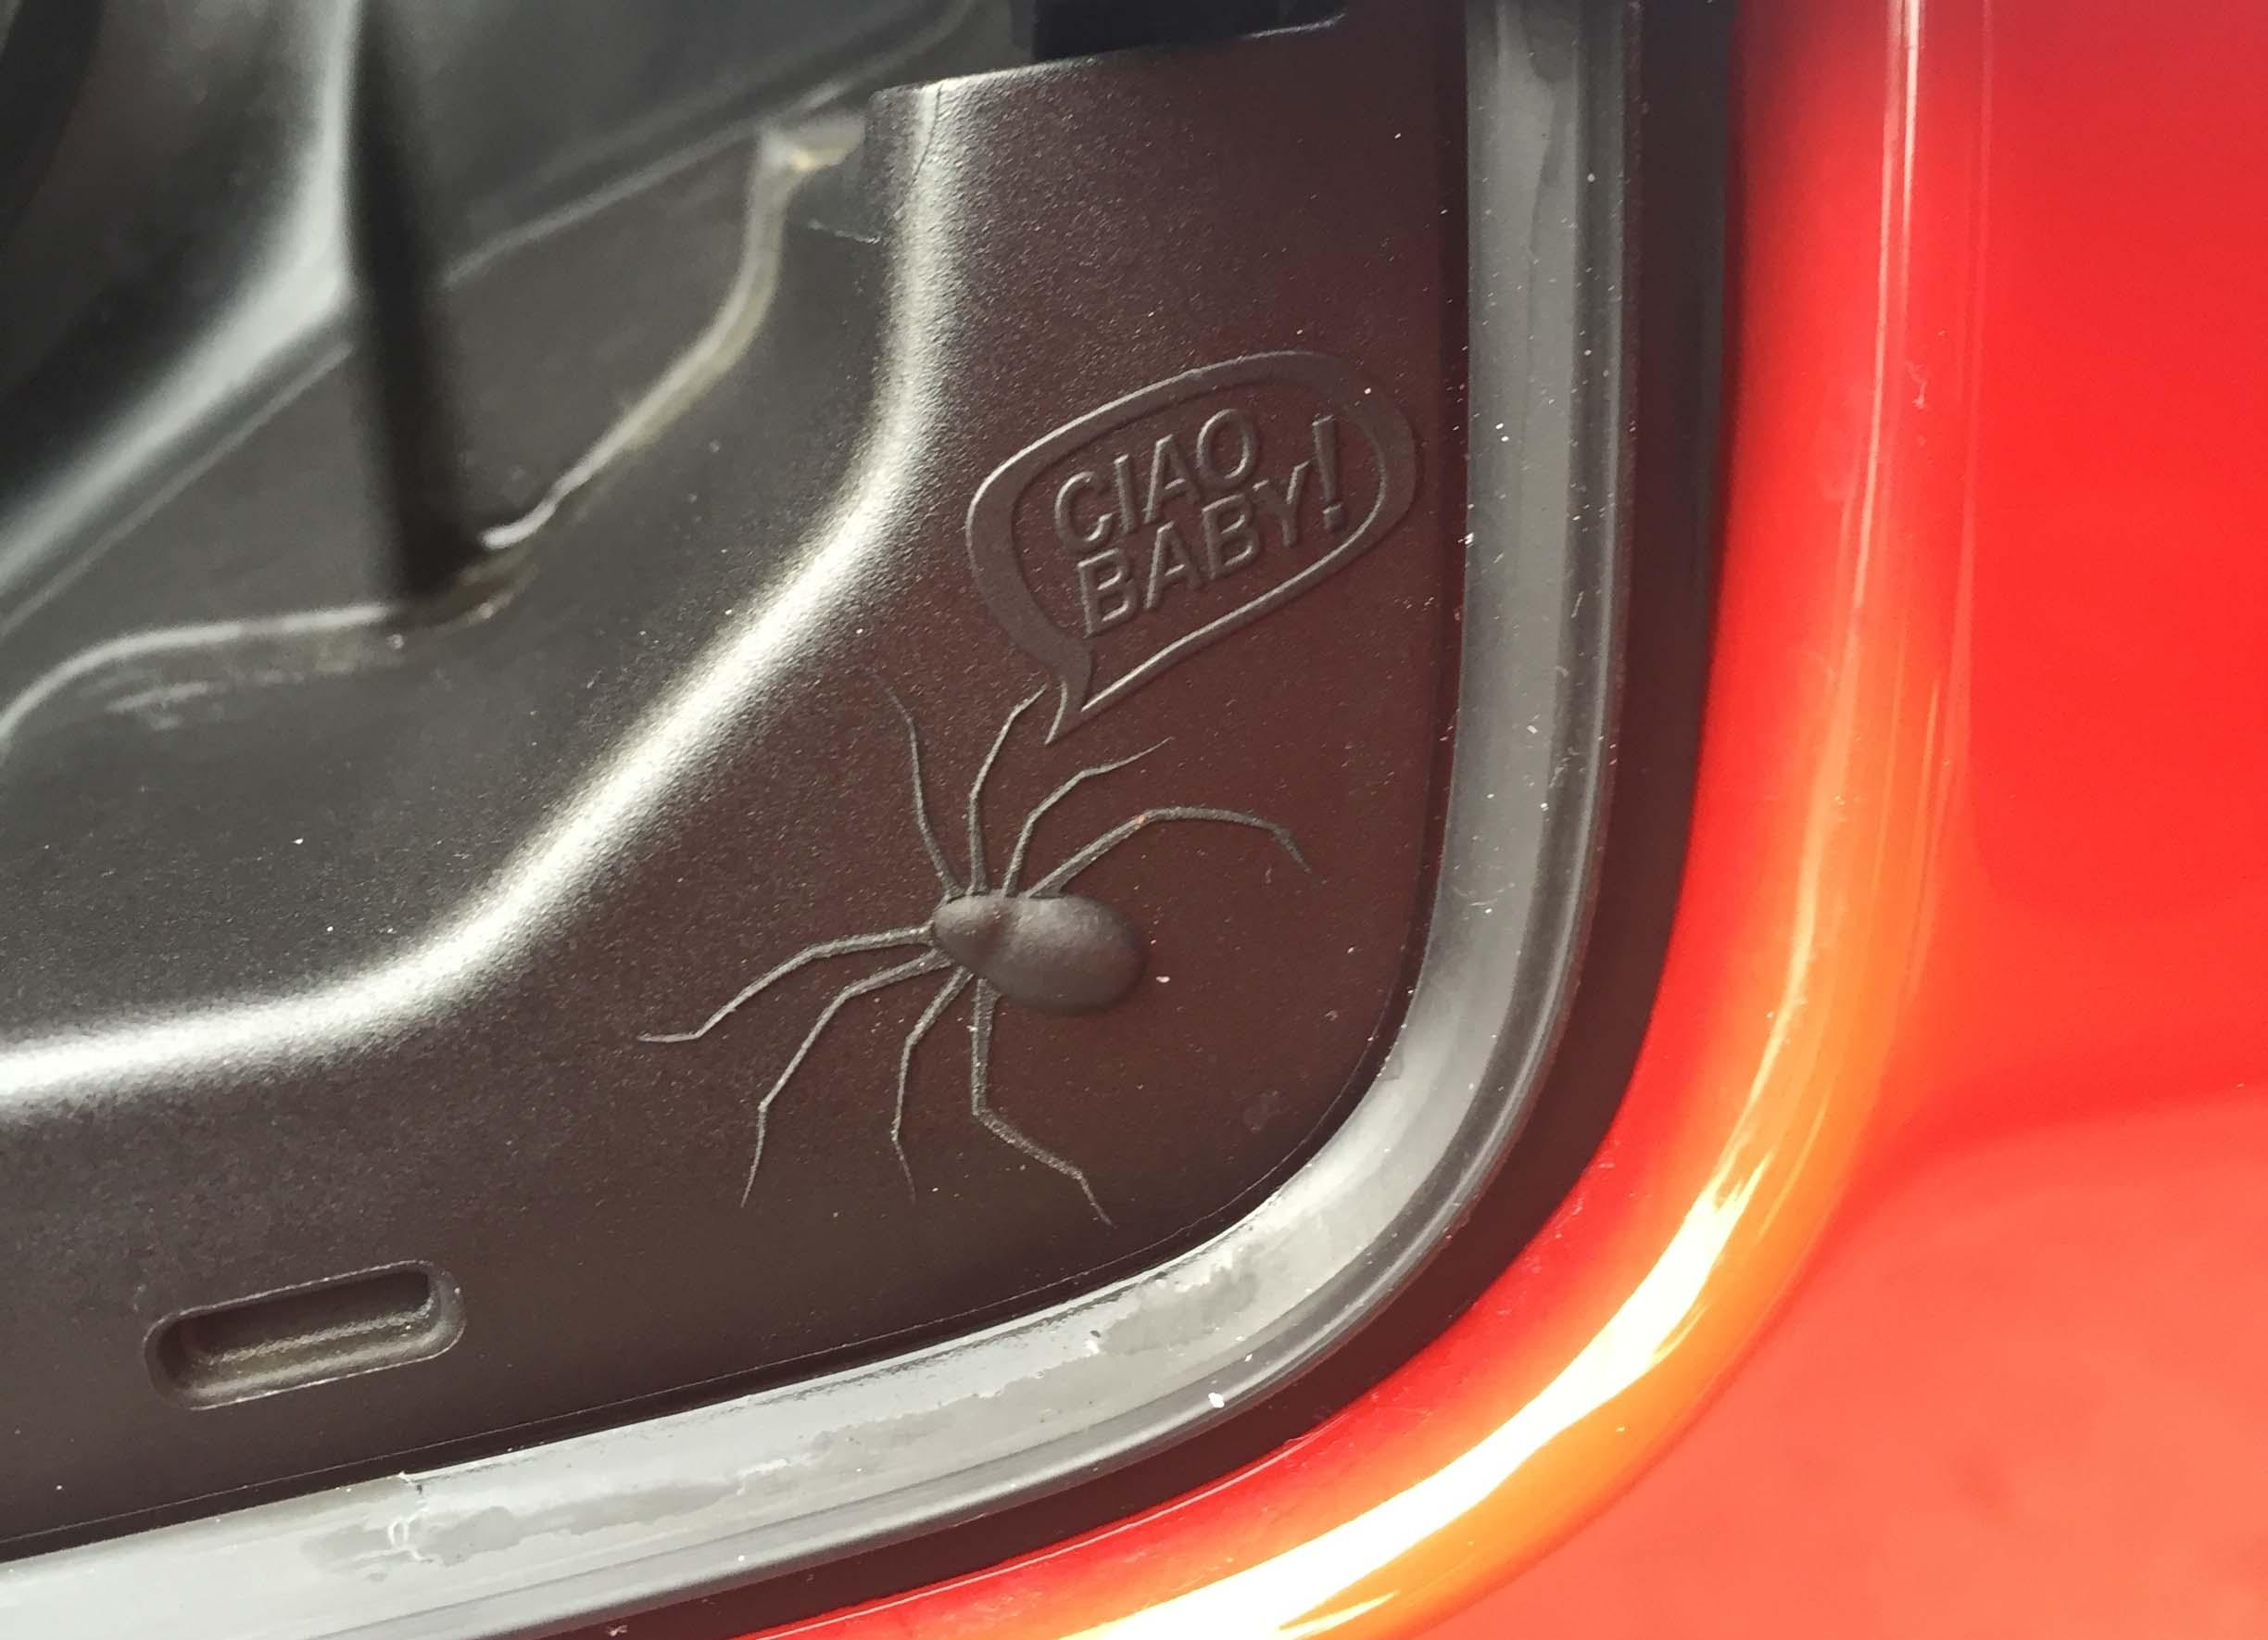 Spider near the gas cap Easter egg / Photo by Jill Ciminillo